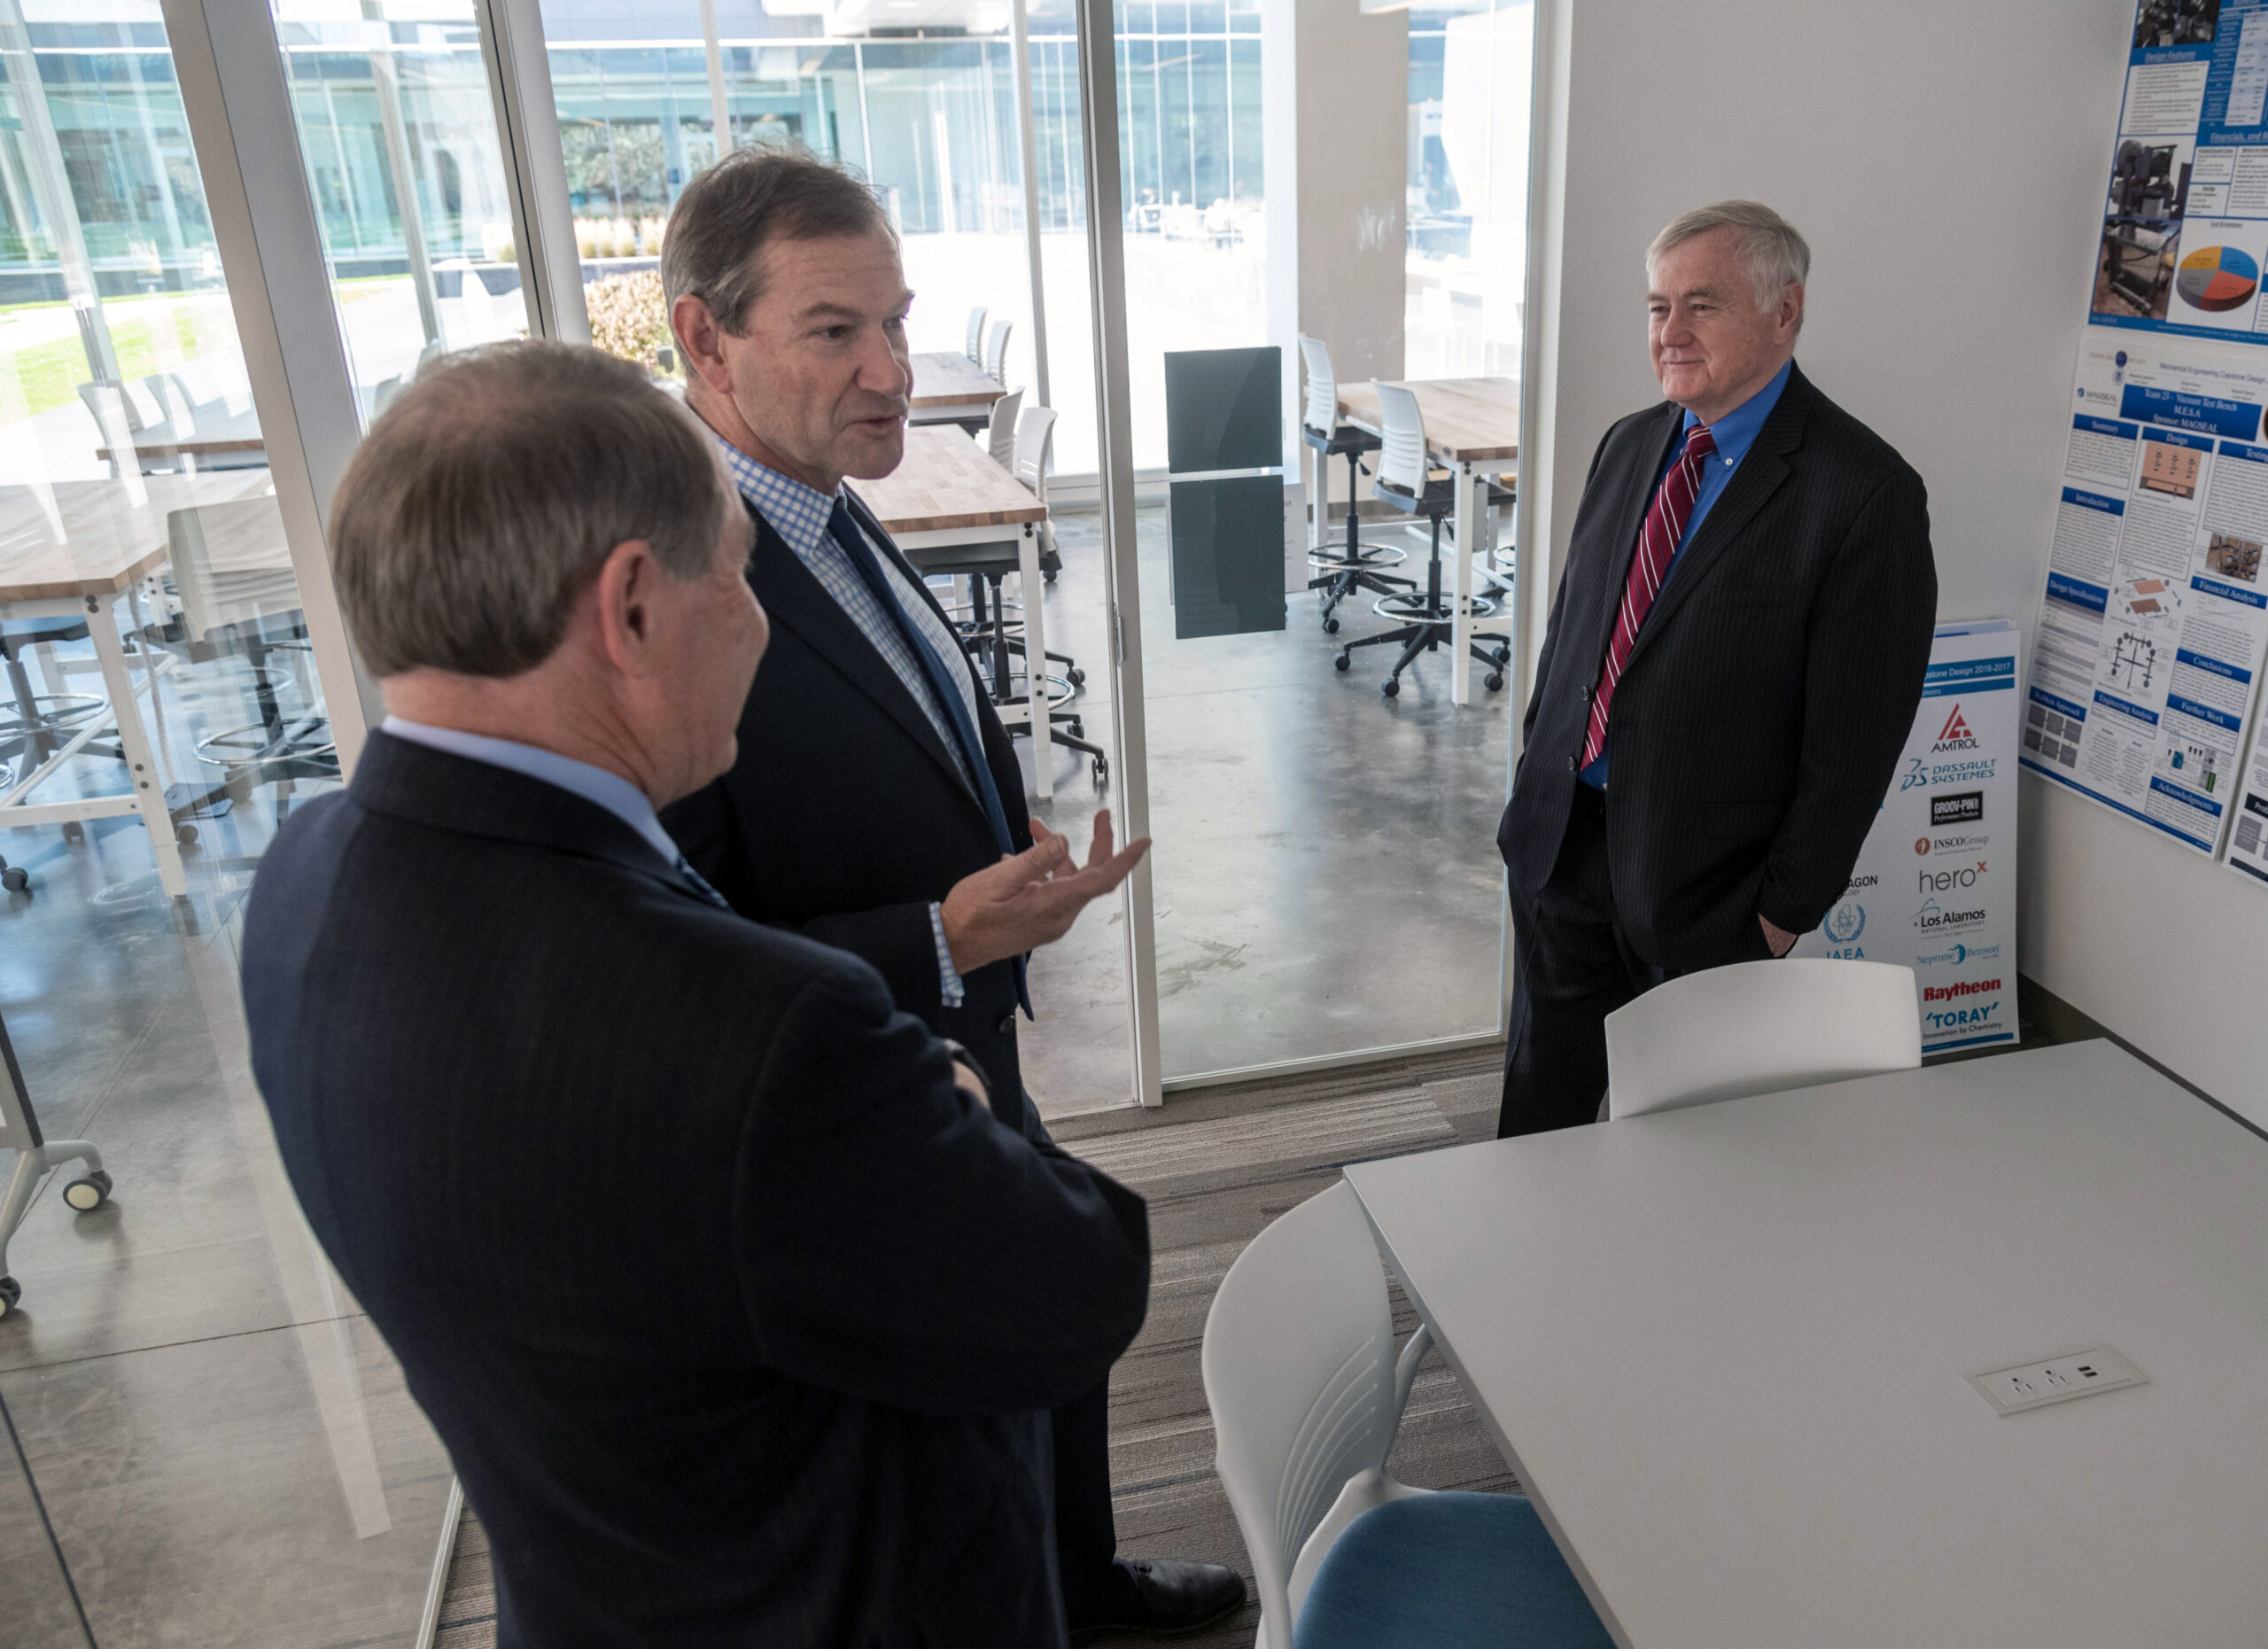 Hexagon's Angus Taylor, center, with URI President David M. Dooley, left, and Dean of Engineering Ray Wright, at URI.